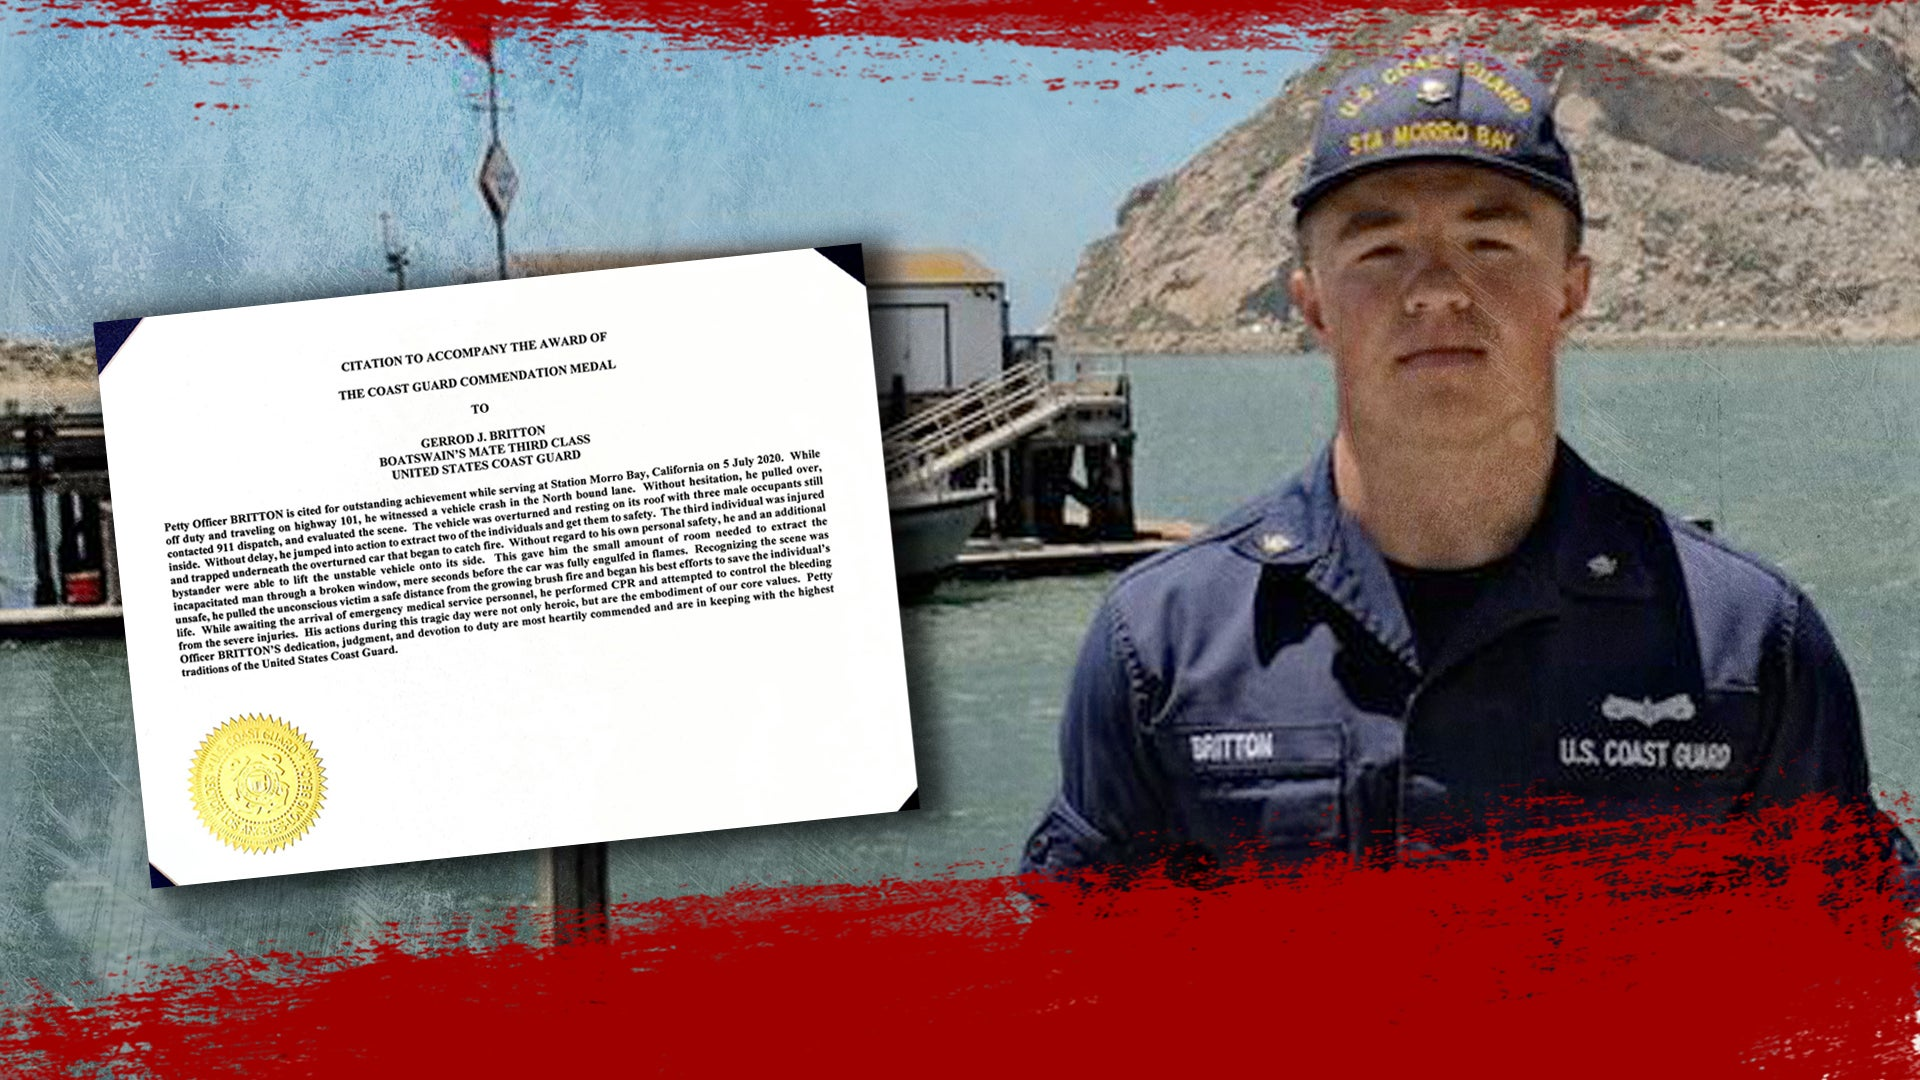 This Coast Guardsman helped pick up a flaming car with his bare hands and dragged 3 people to safety